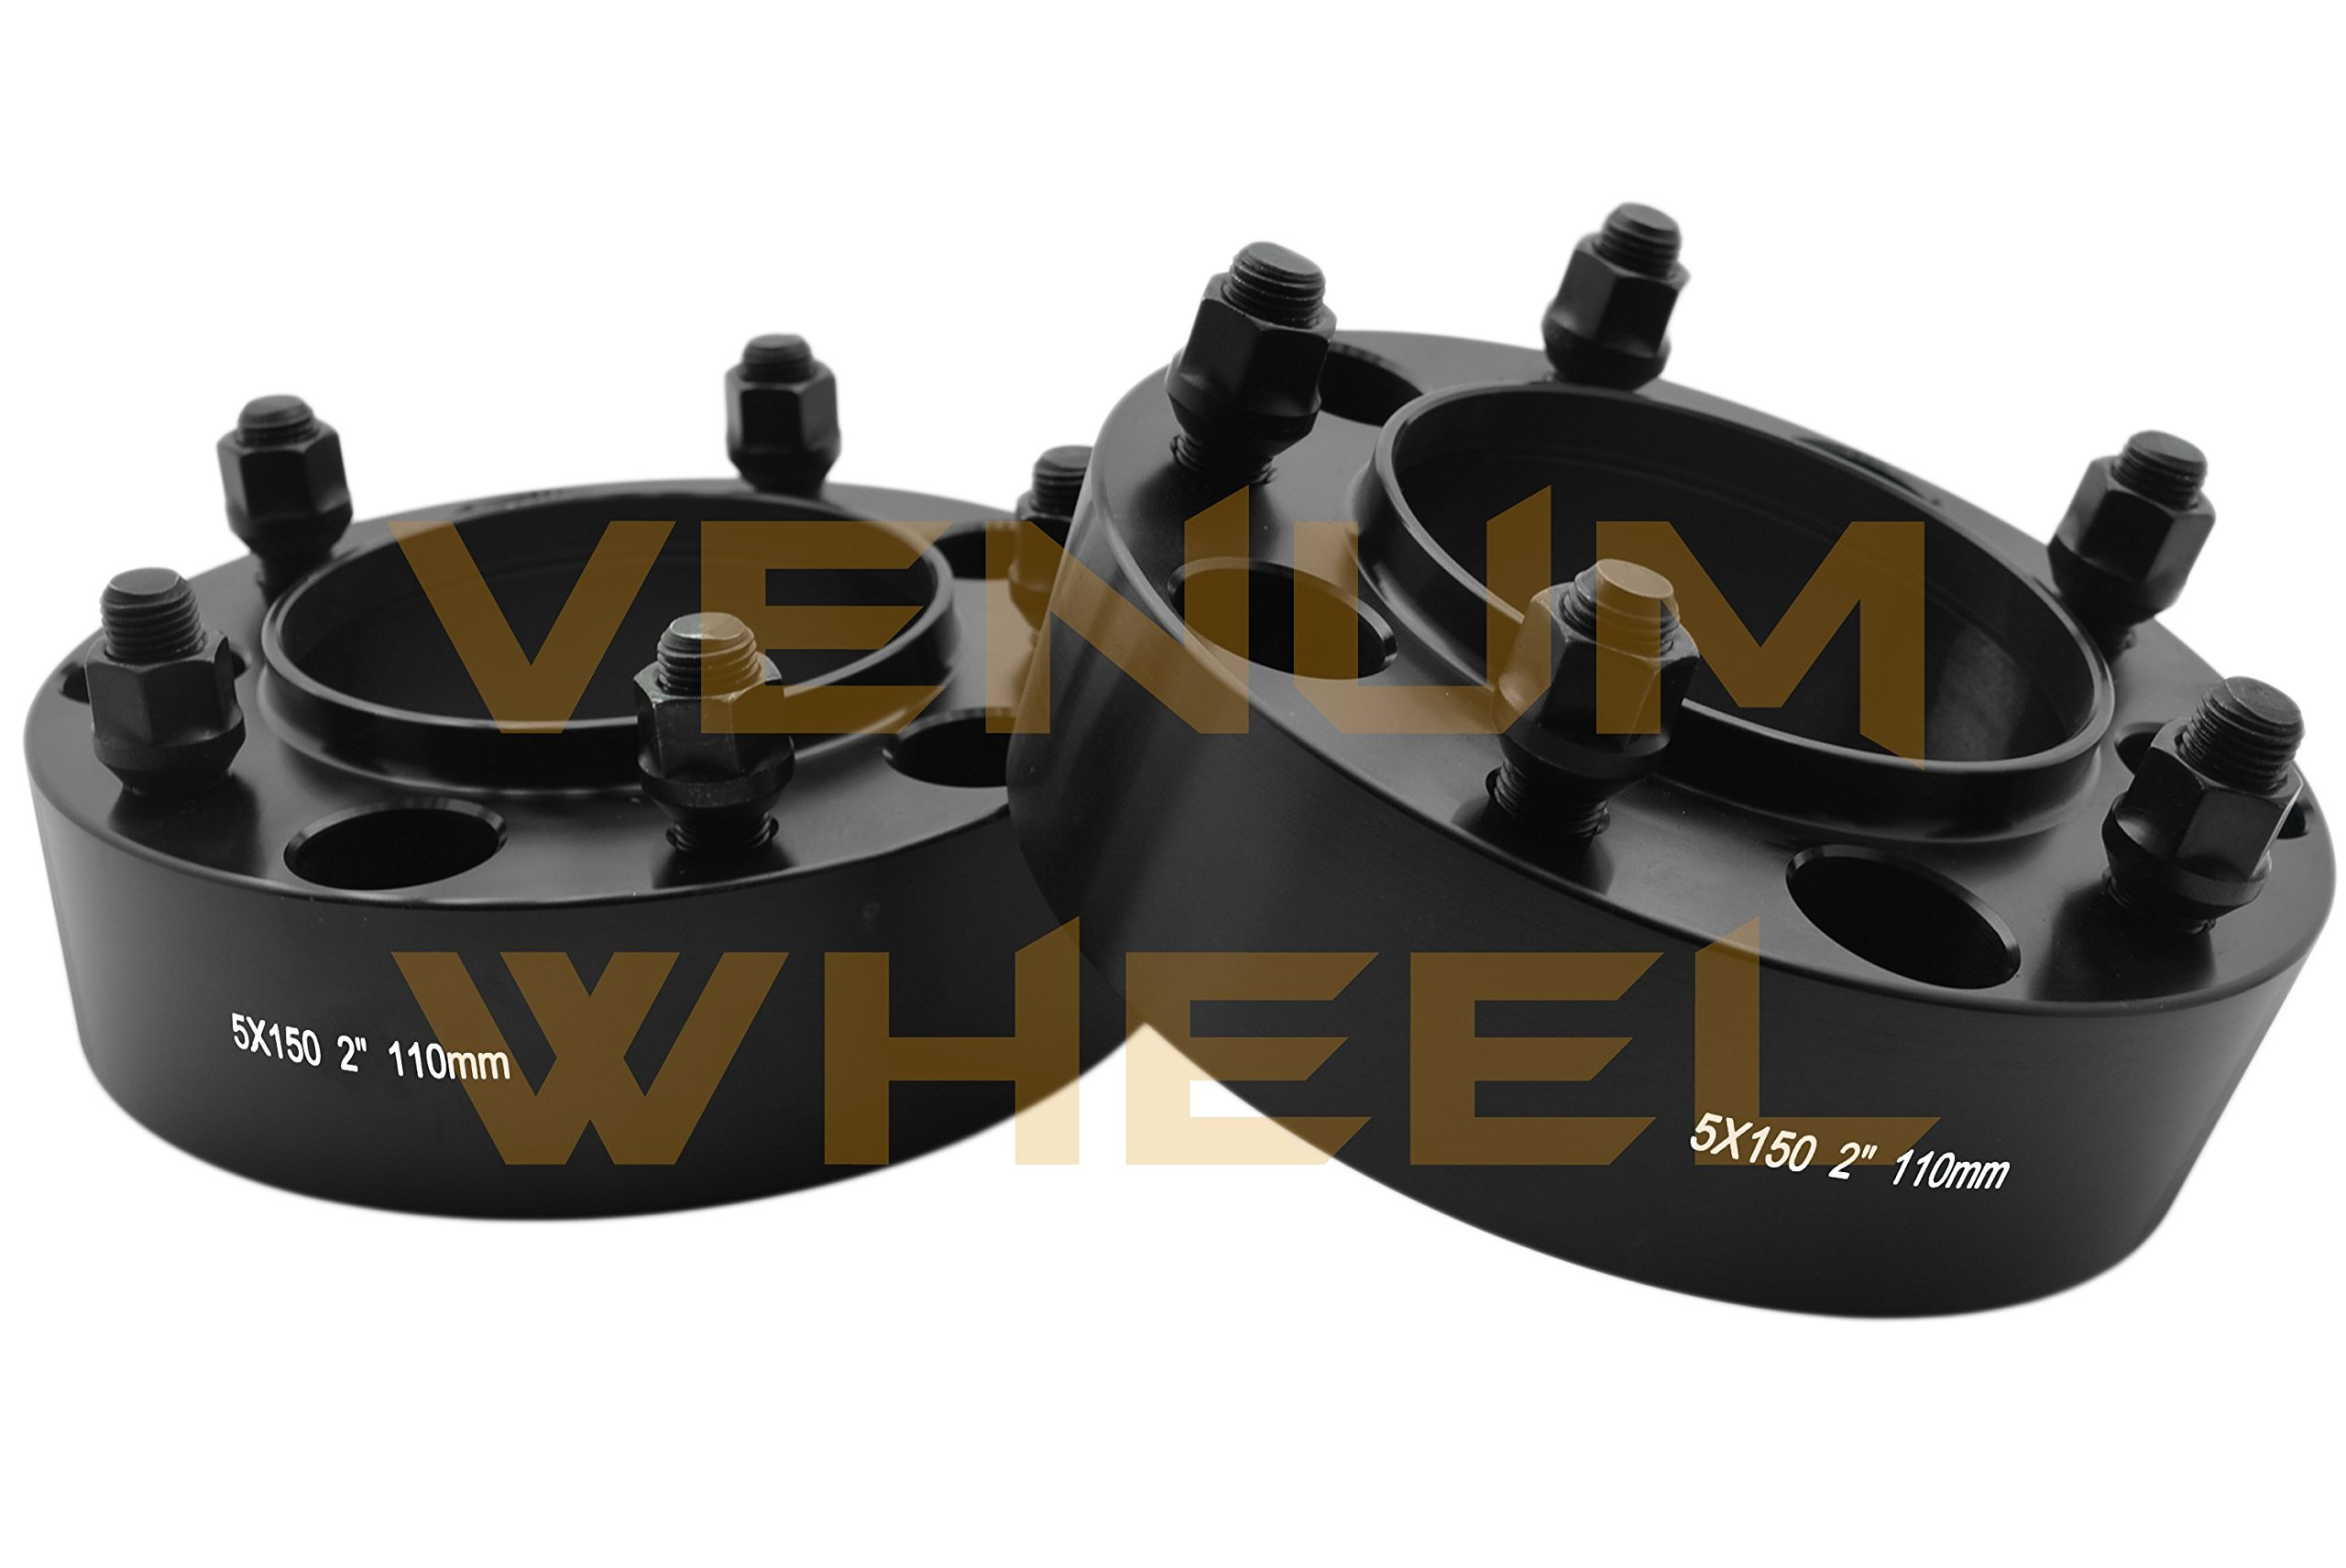 4 Pc 5x150 to 5x150 2'' Thick Black Hubcentric Wheel Spacers Adapter for Toyota Tundra 2007-2016 Hub Bore 110mm 14x1.5 Studs 6061 T6 Billet Aluminum (07-) Black by Venum wheel accessories (Image #2)